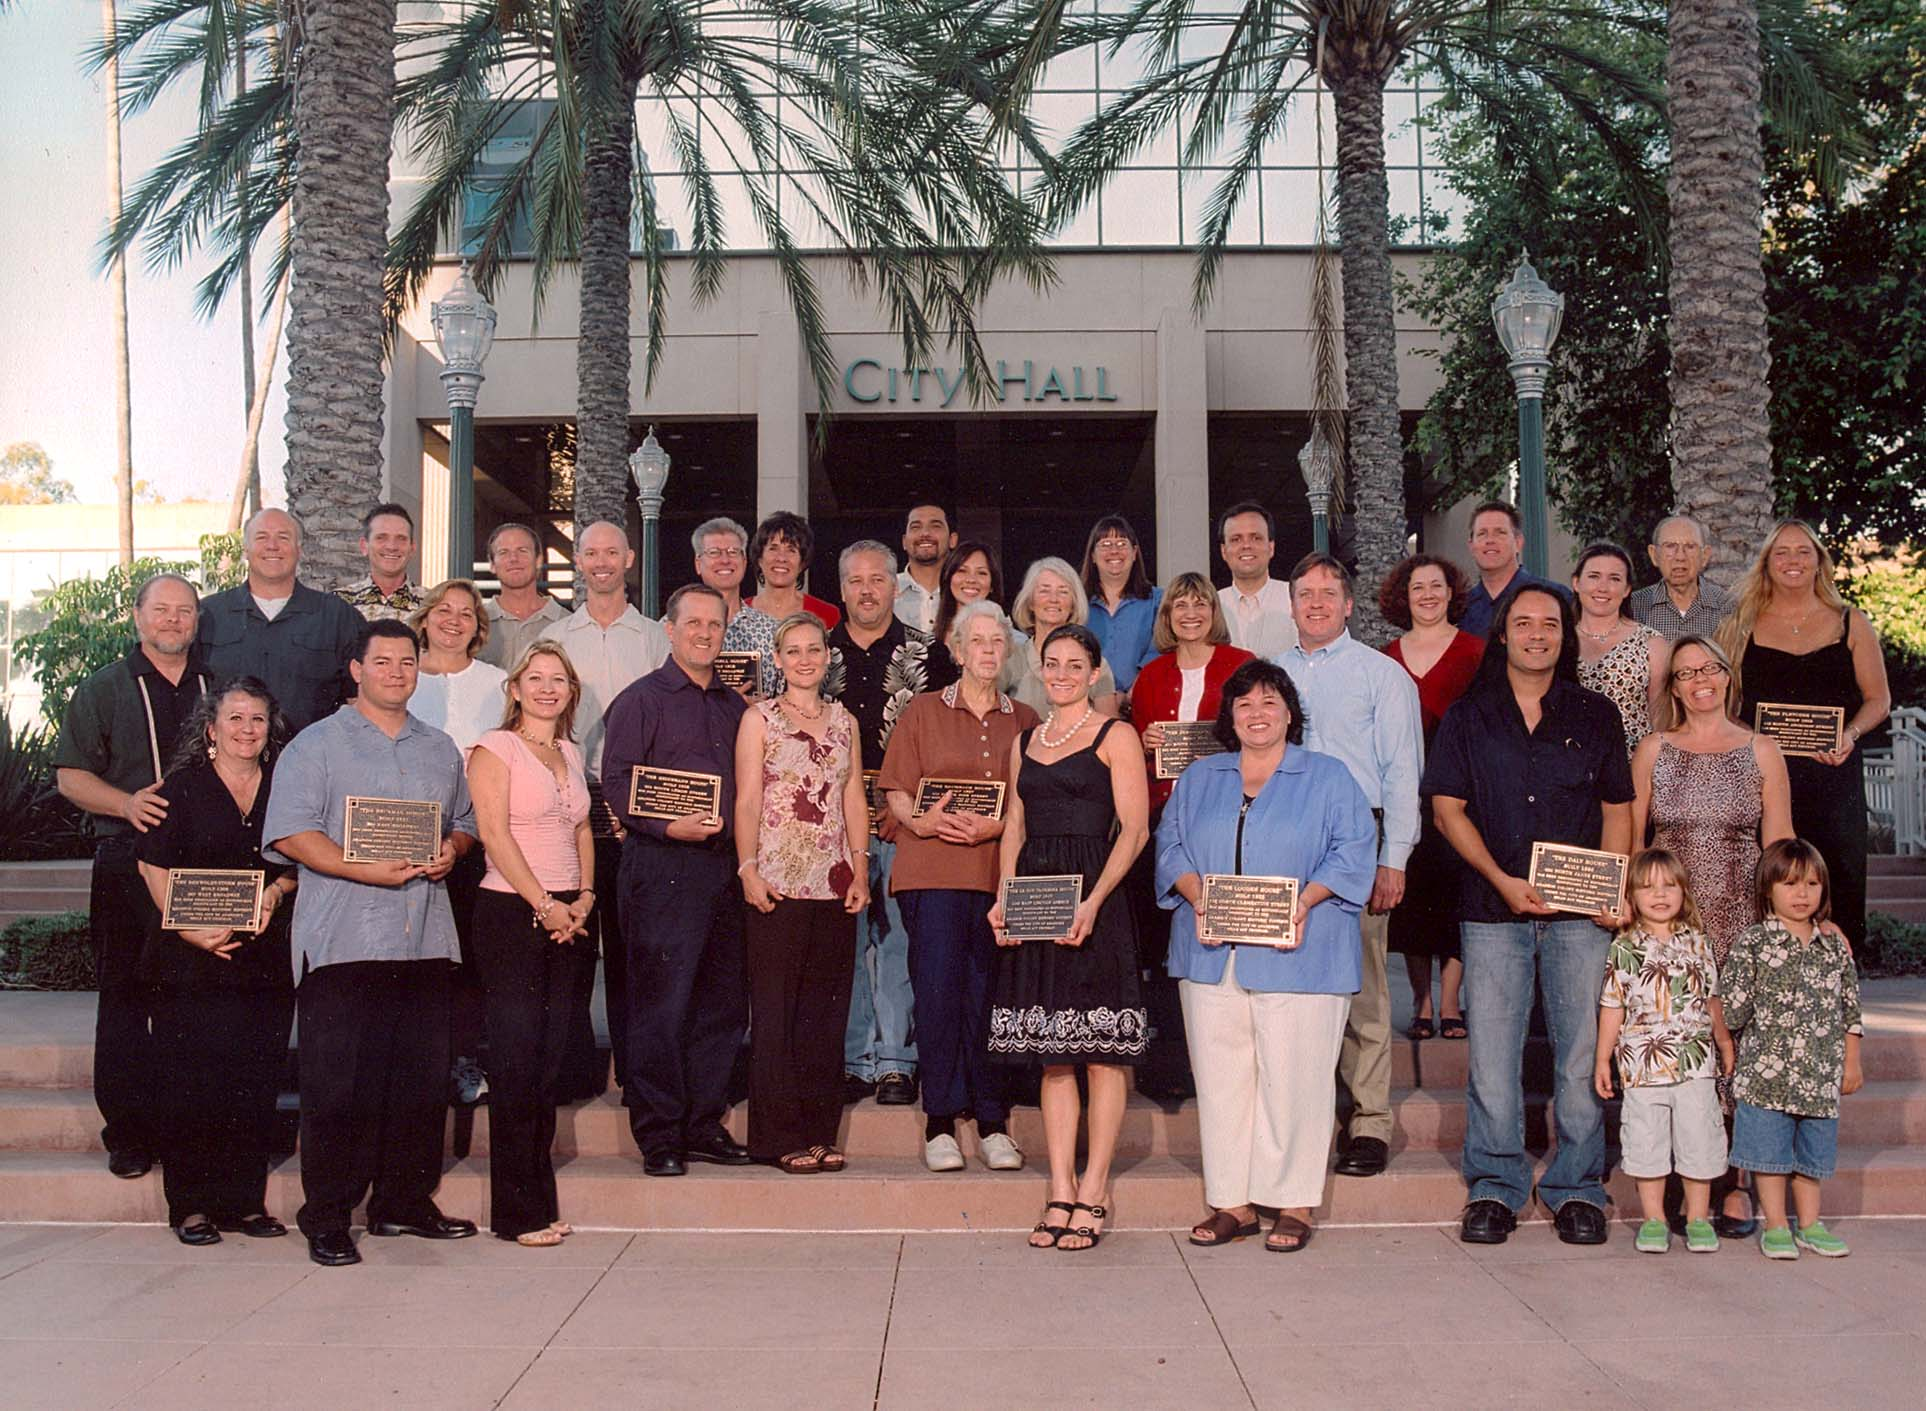 Group photo with the onwers holding their plaques for the Mills Act Participating Properties from 2005